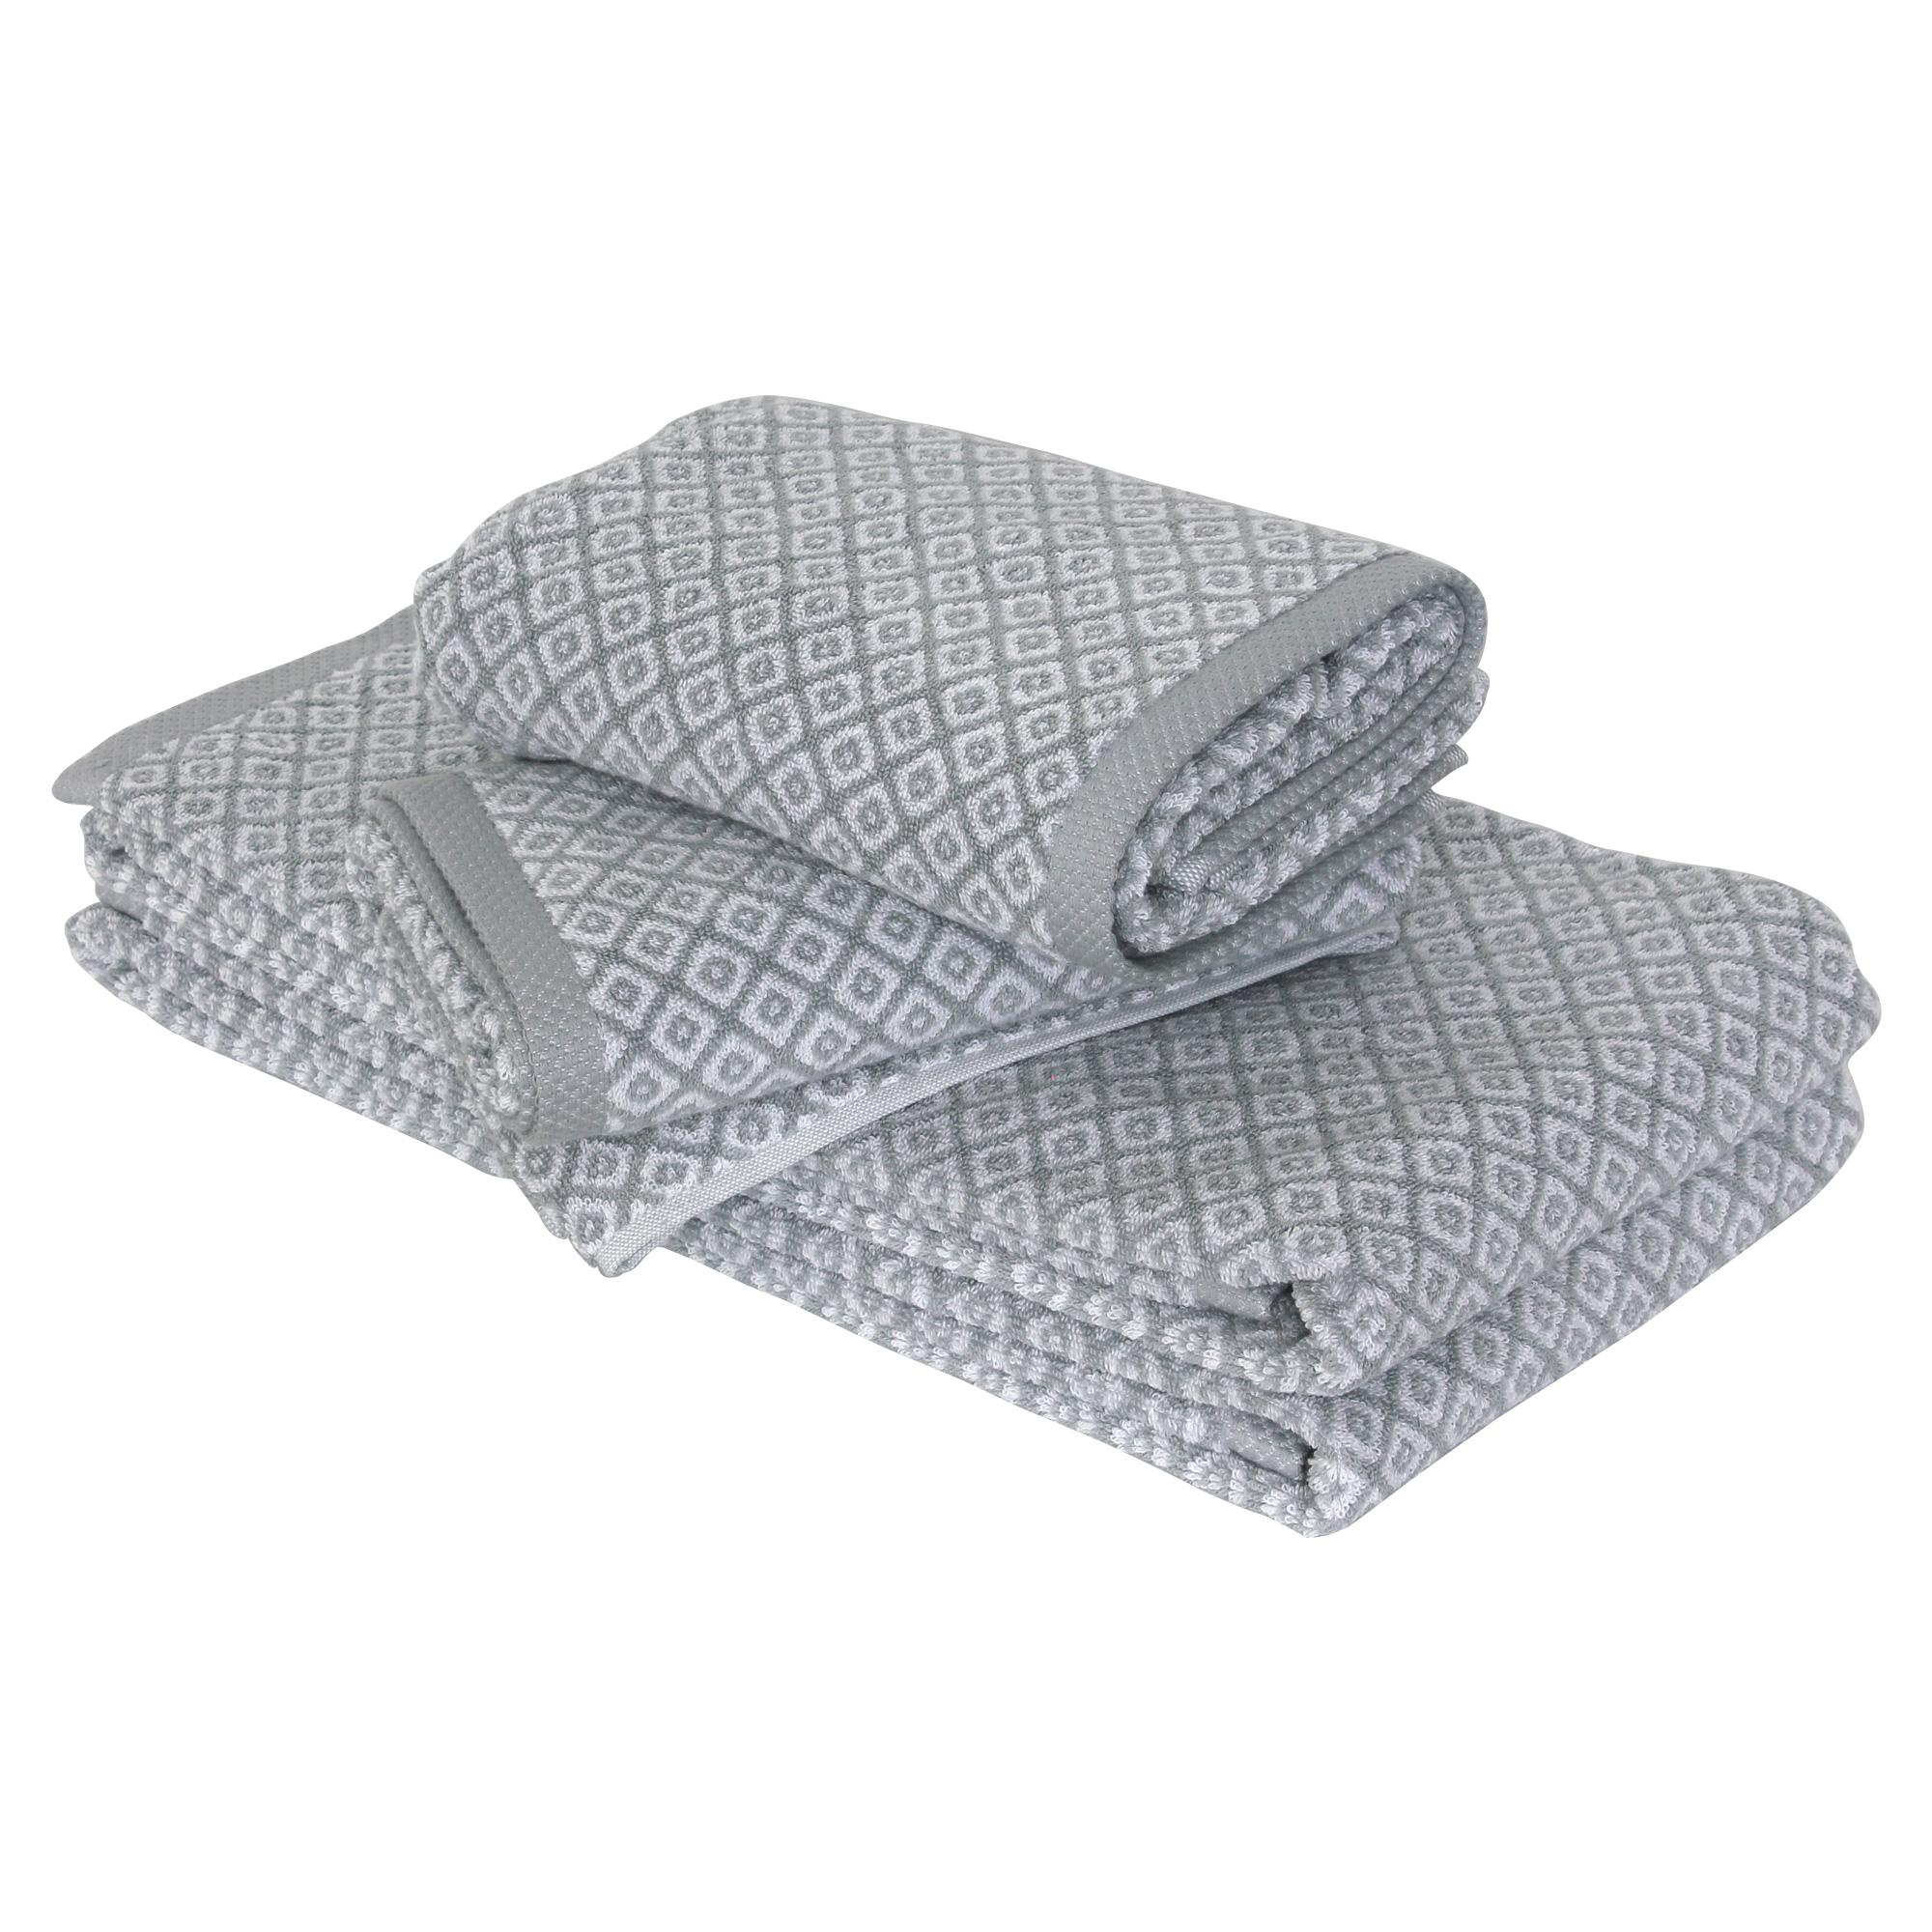 parure de bain 4 pi ces douche shibori mosaic gris 100 coton 500g m2 ebay. Black Bedroom Furniture Sets. Home Design Ideas